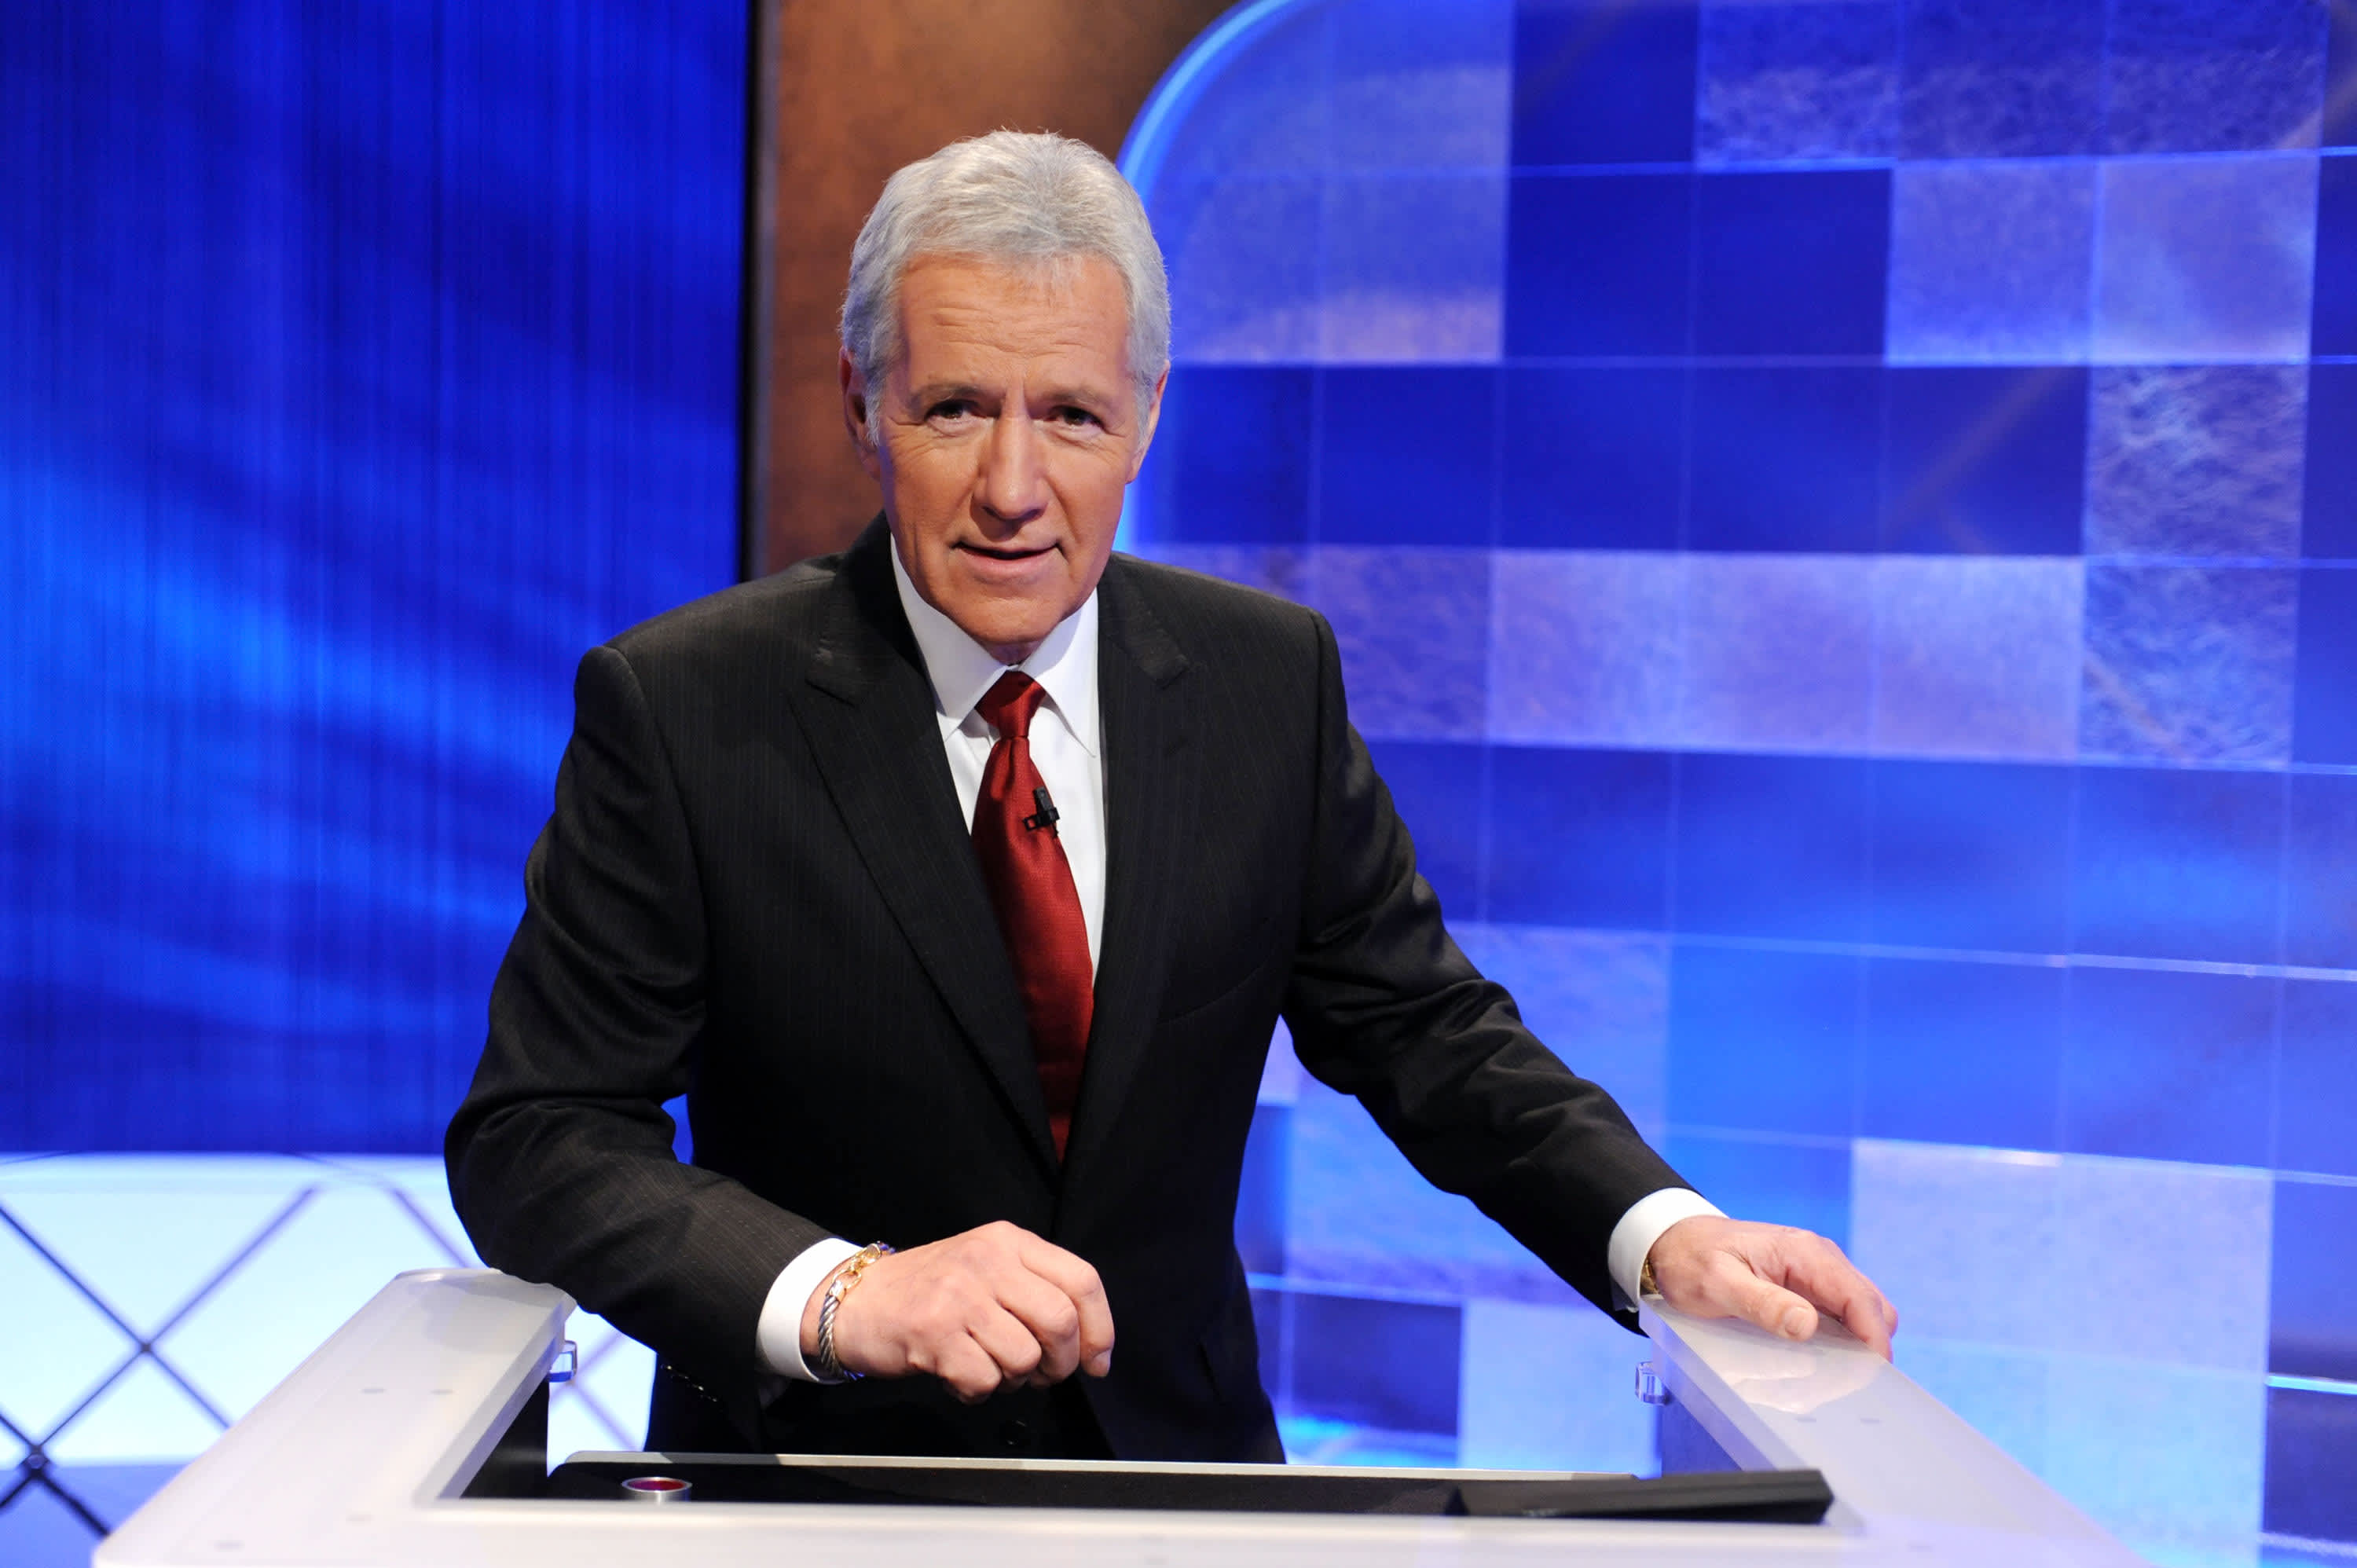 What 'Jeopardy!' host Alex Trebek plans to do when he eventually retires